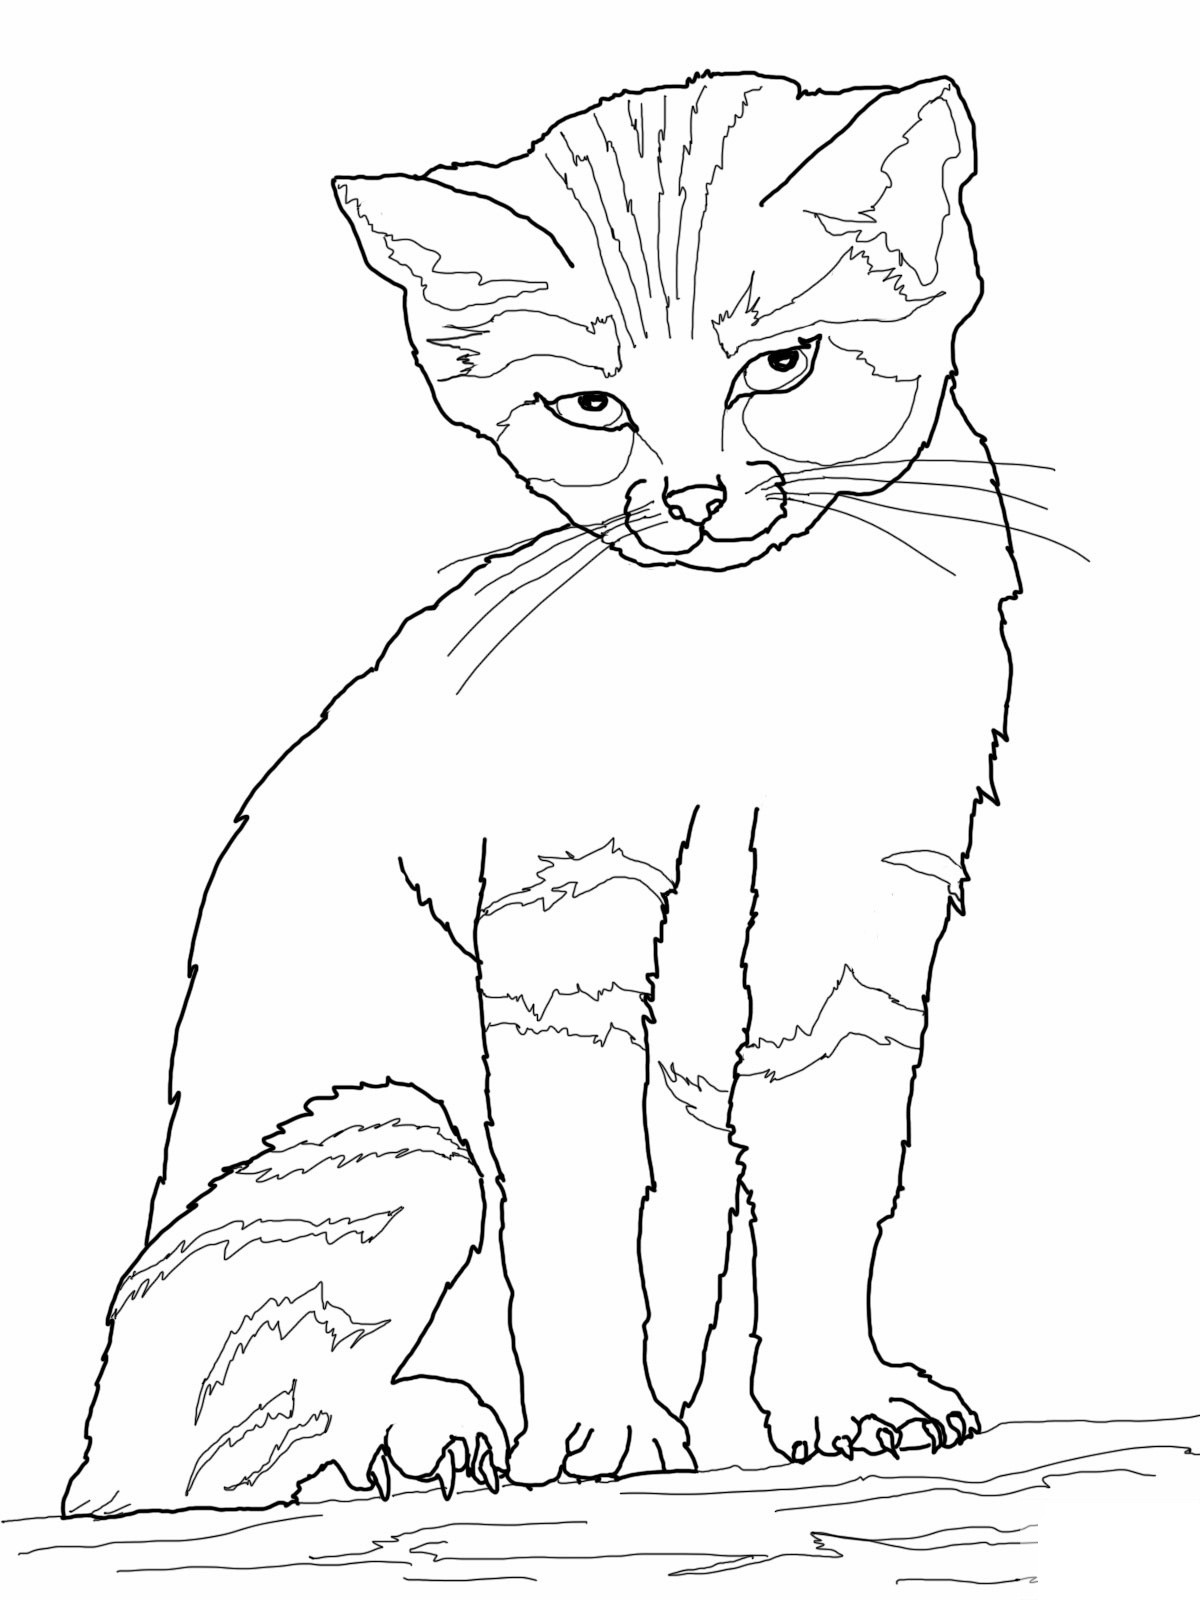 Best ideas about Coloring Sheets For Kids Free . Save or Pin Free Printable Cat Coloring Pages For Kids Now.